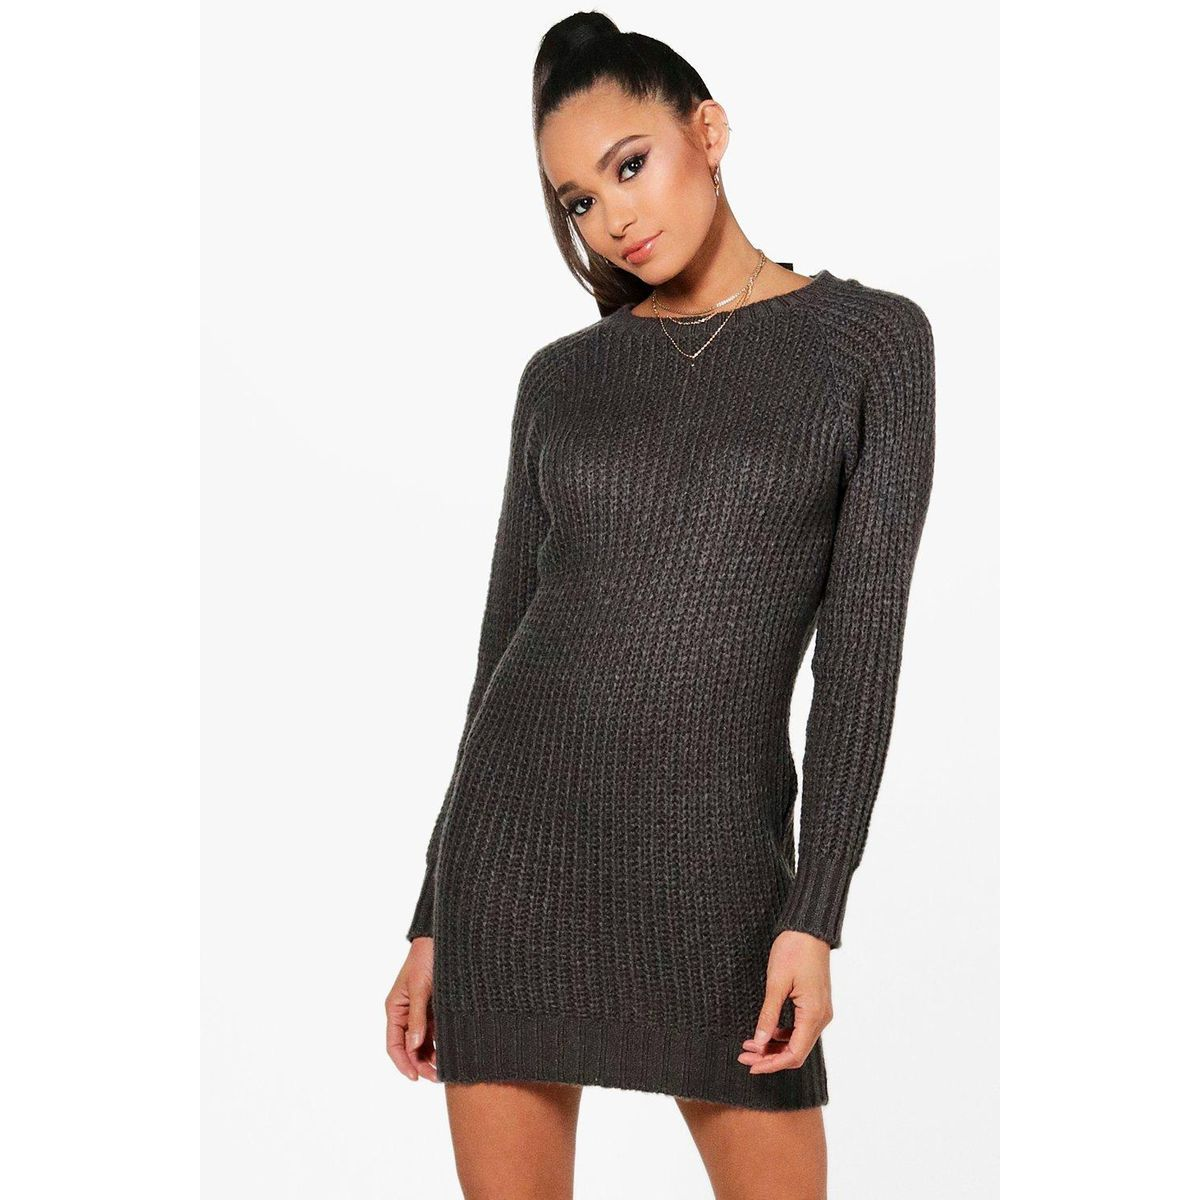 Robe Pull Courte Col Rond Manches Longues Tricot Robe Pull Robe Pull Et Robe Courte